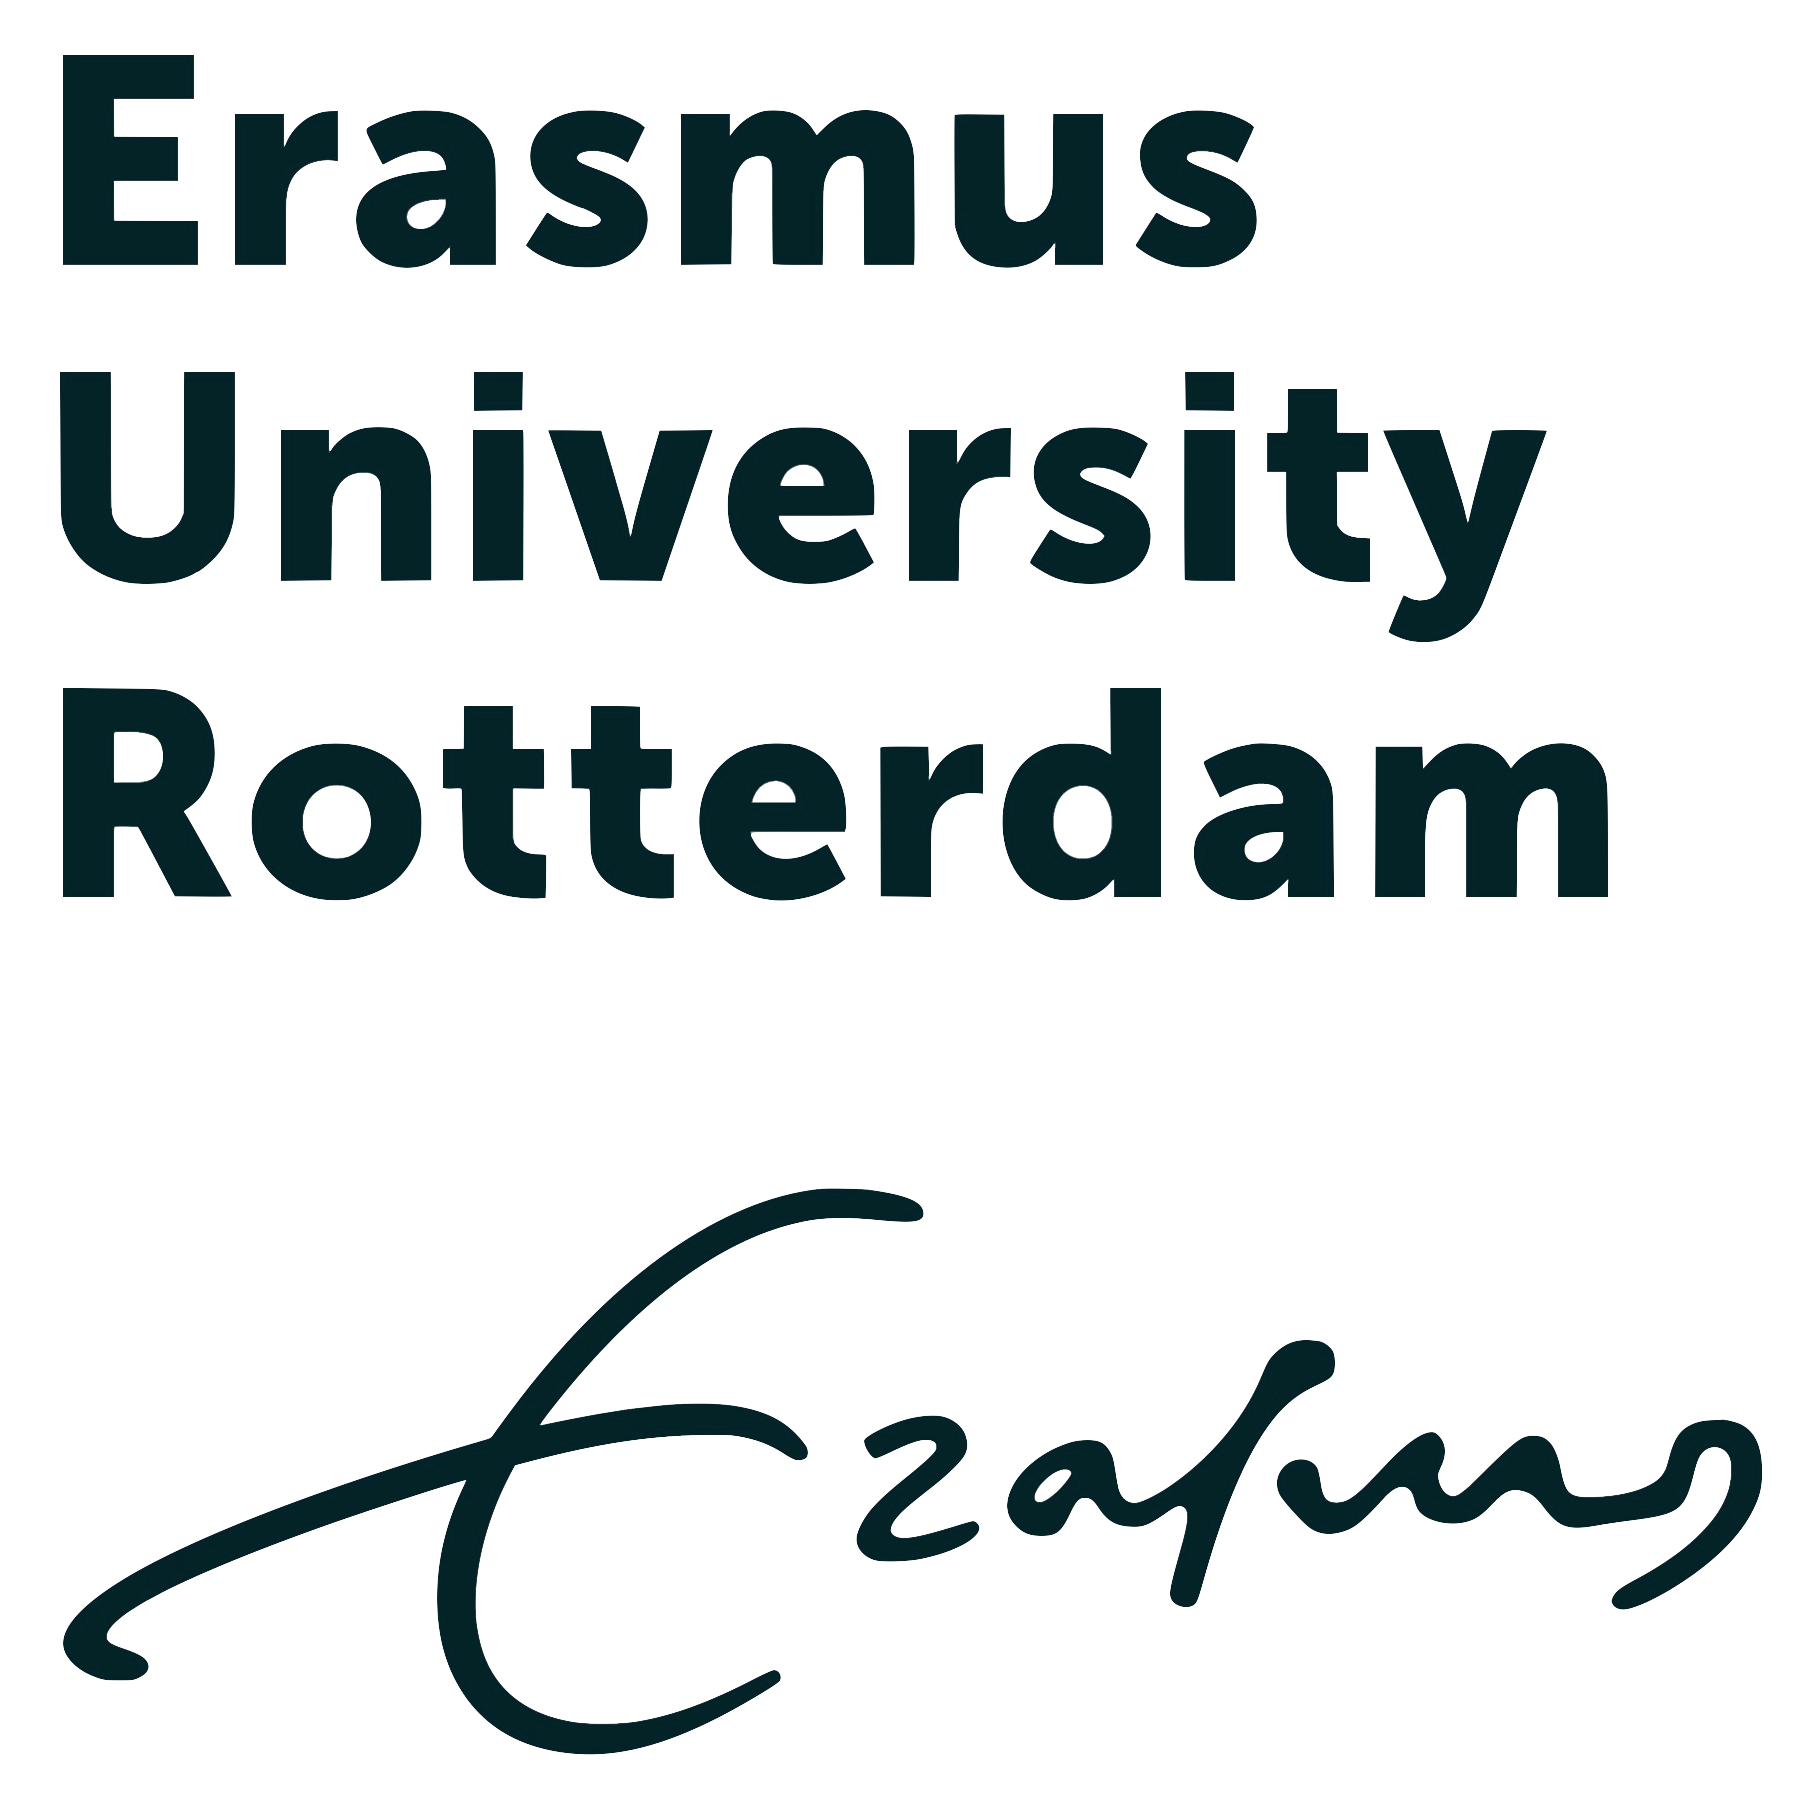 Erasmus university rotterdam scholarship in netherlands 2017 erasmus university rotterdam scholarship in netherlands 2017 scholarship positions 2018 2019 spiritdancerdesigns Image collections